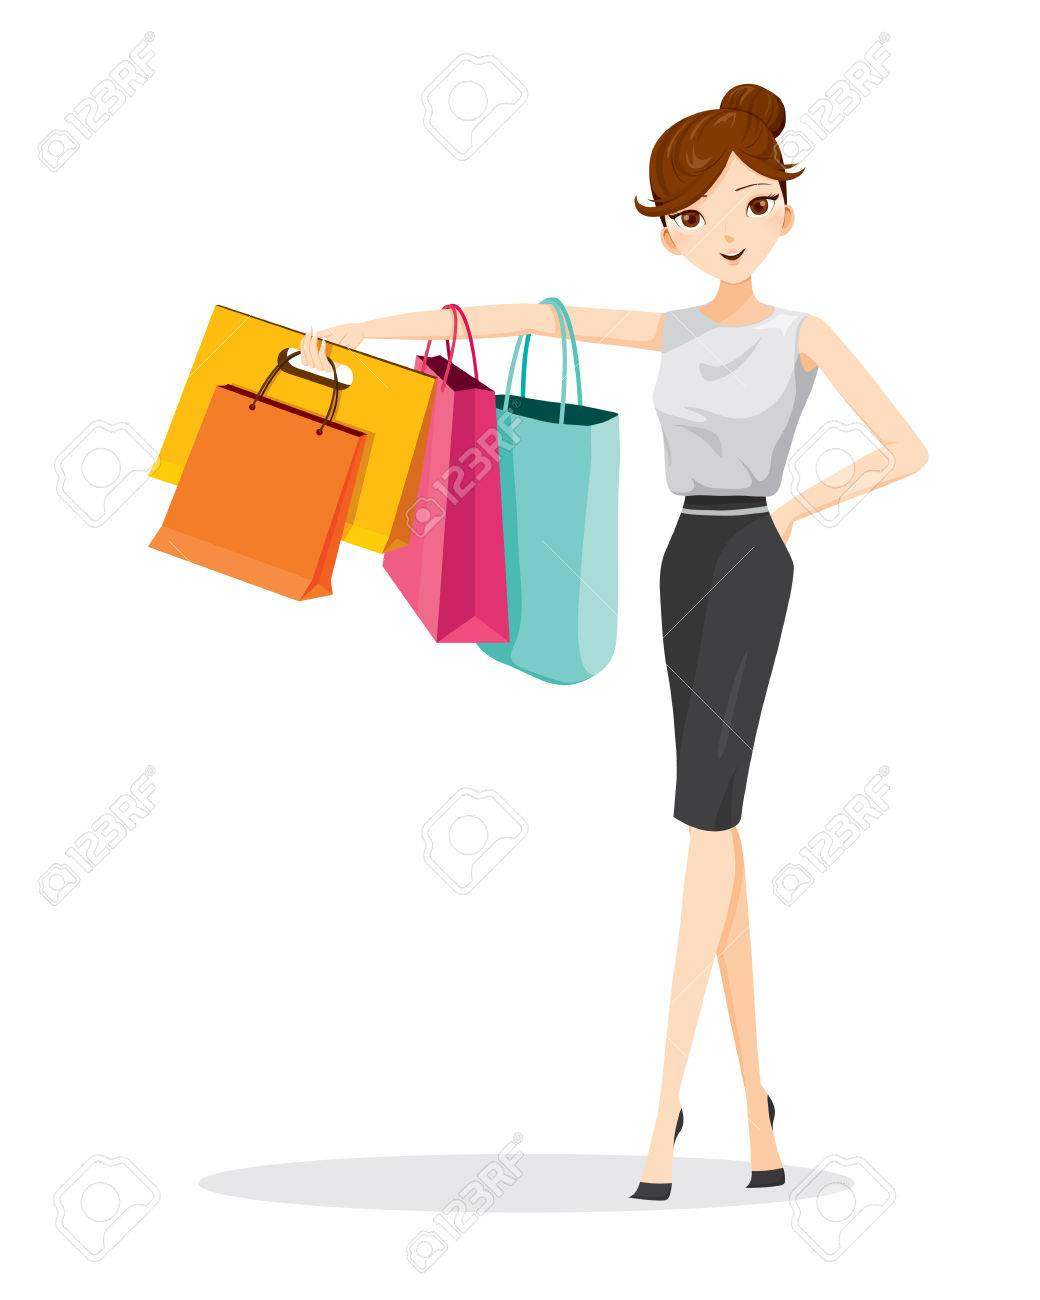 Woman hanging shopping bags on her arm, goods, food, beverage, beauty, lifestyle Foto de archivo - 53424256